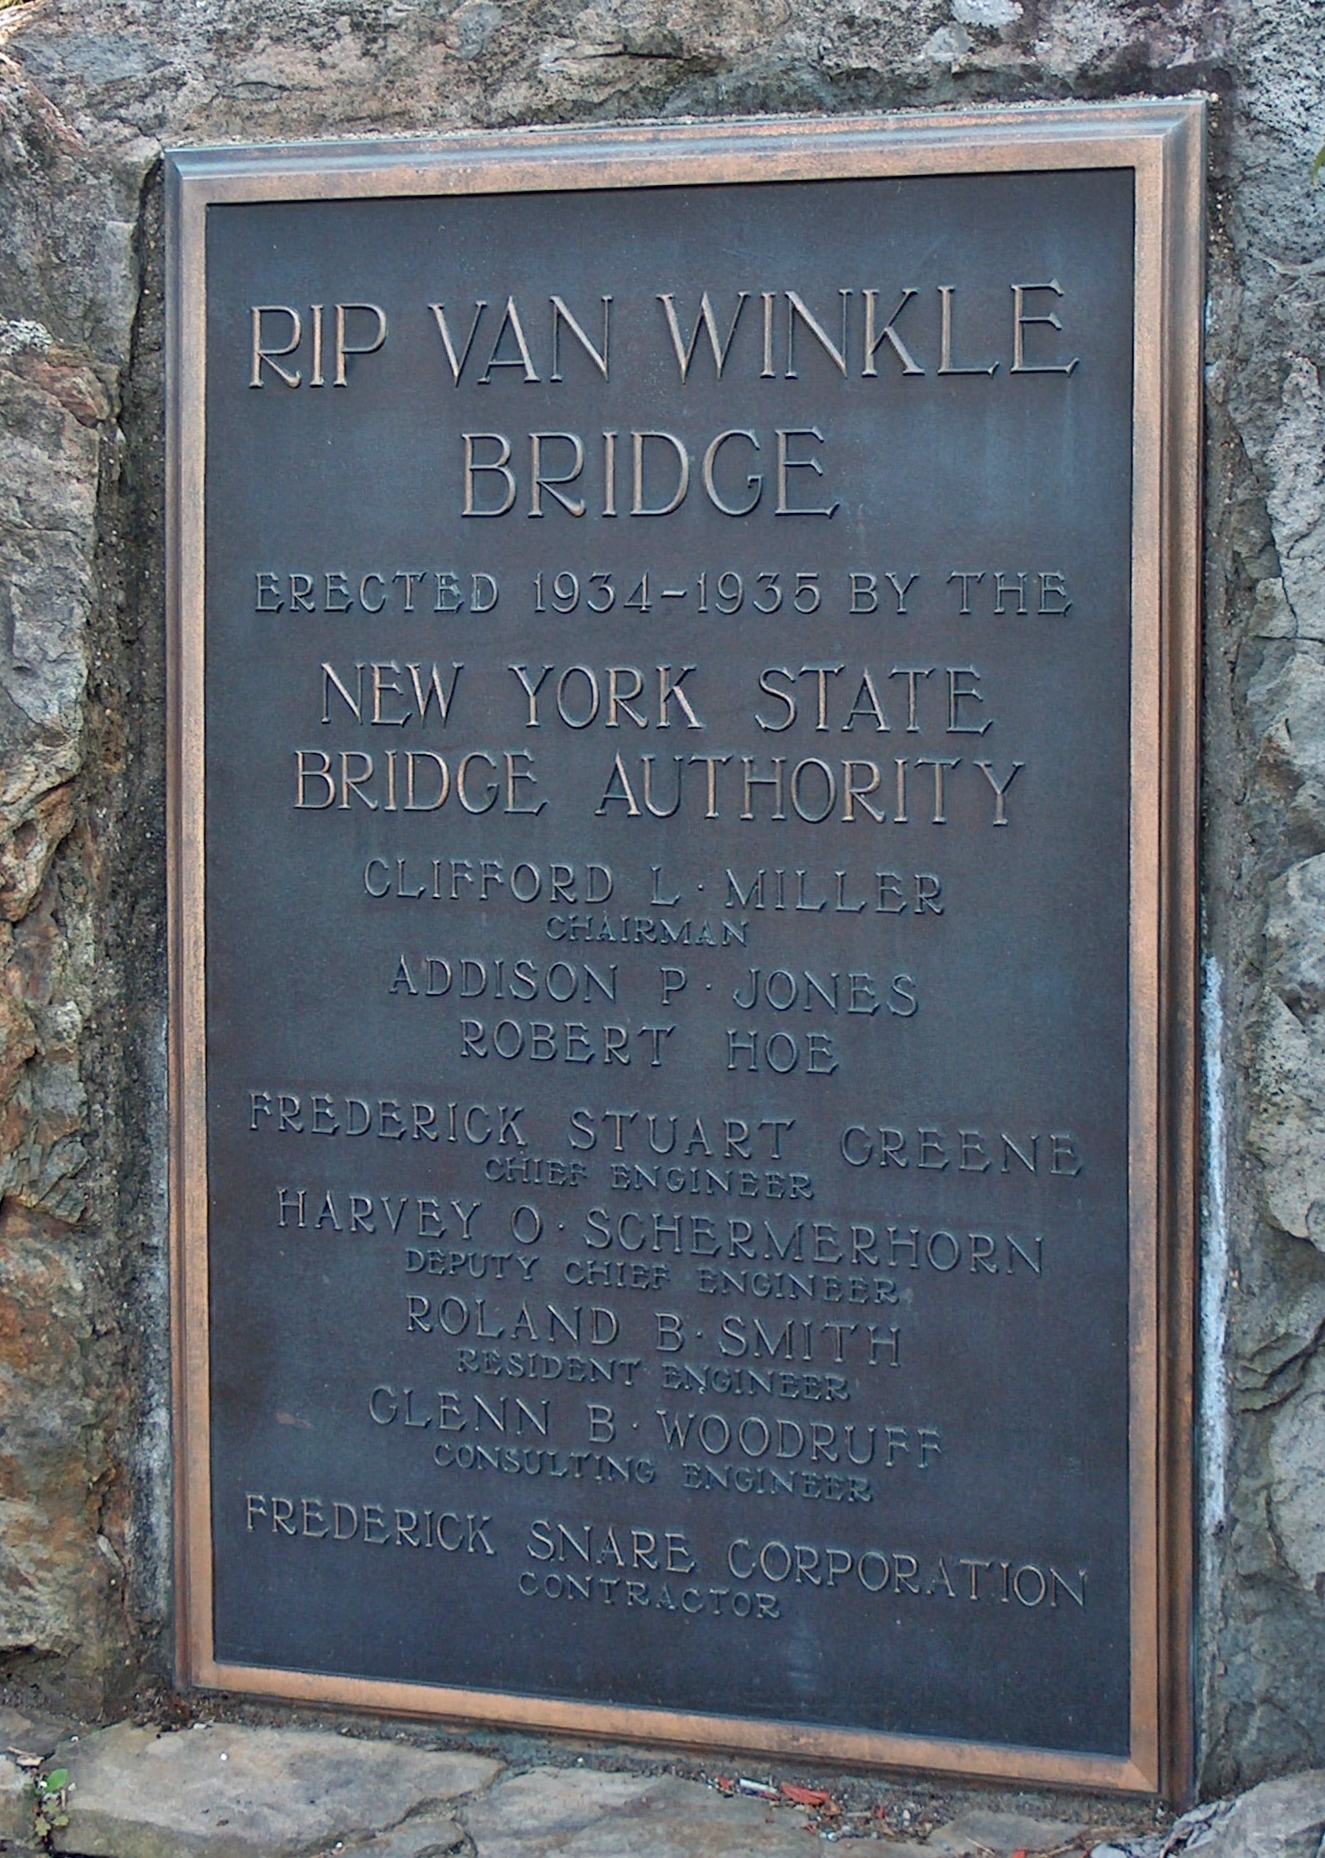 Rip Van Winkle Bridge Dedication Plaque 1954-1955